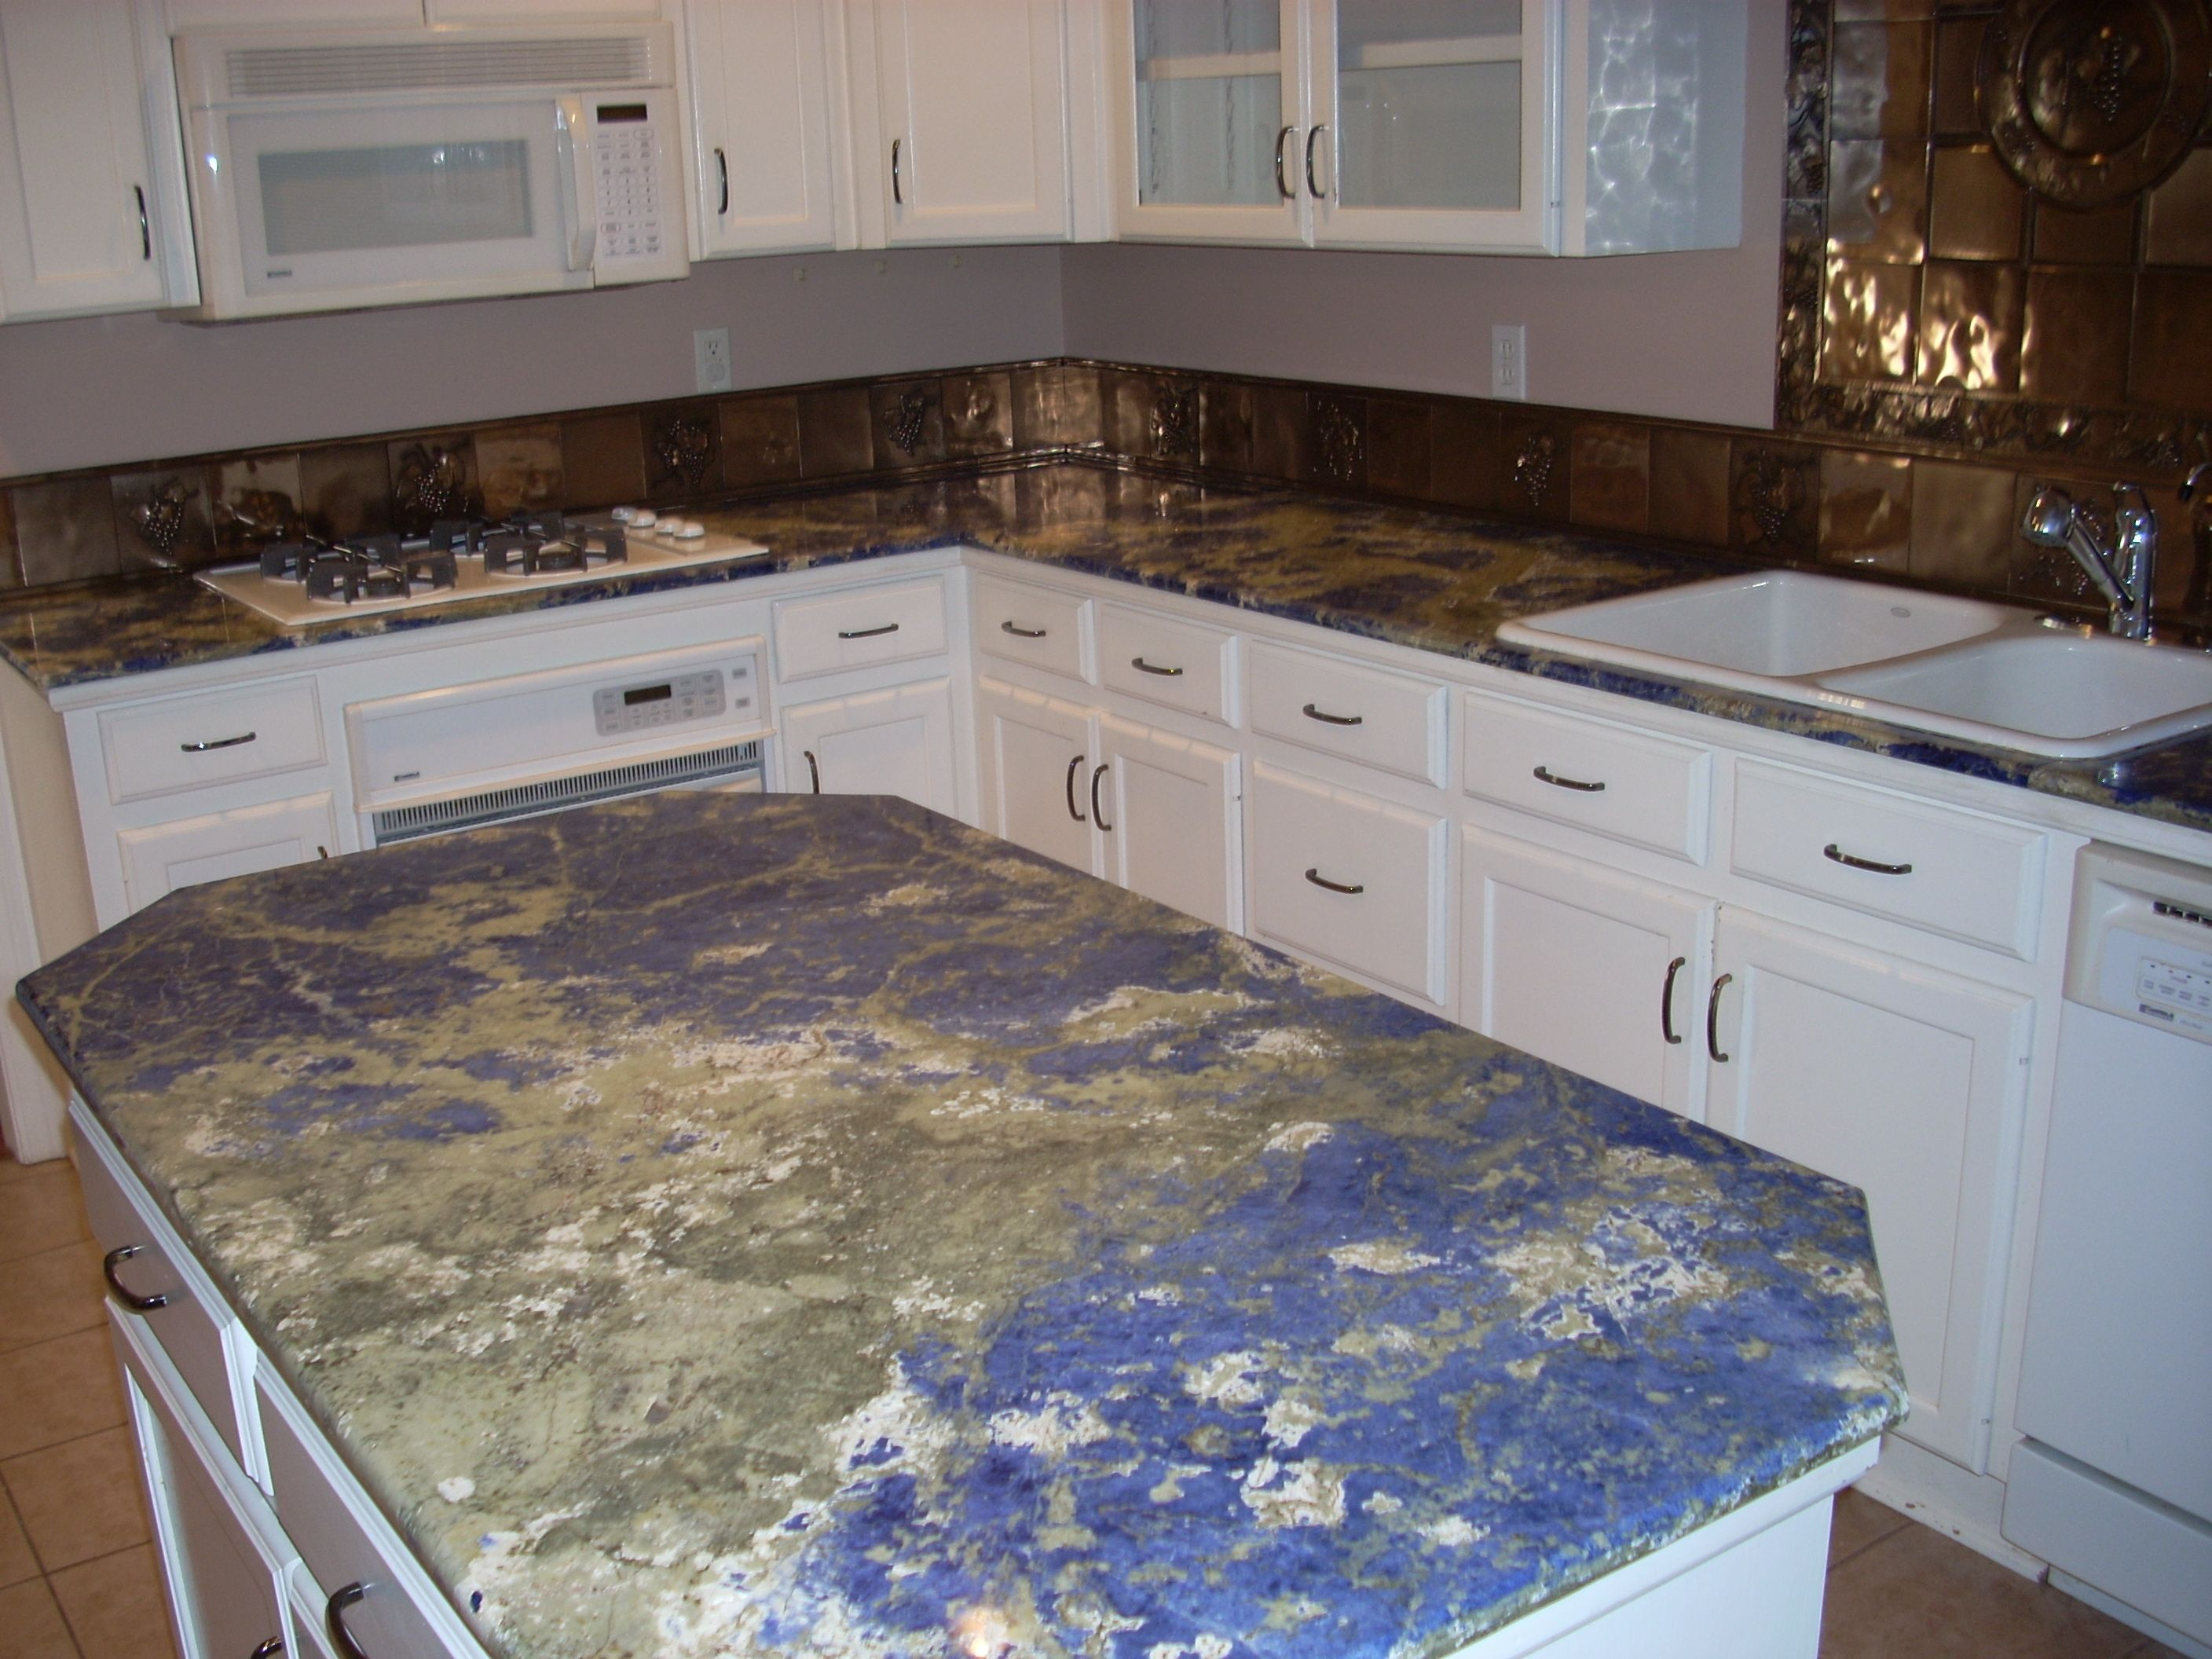 Sodalite blue granite countertops amazing texture Granite kitchen countertops pictures